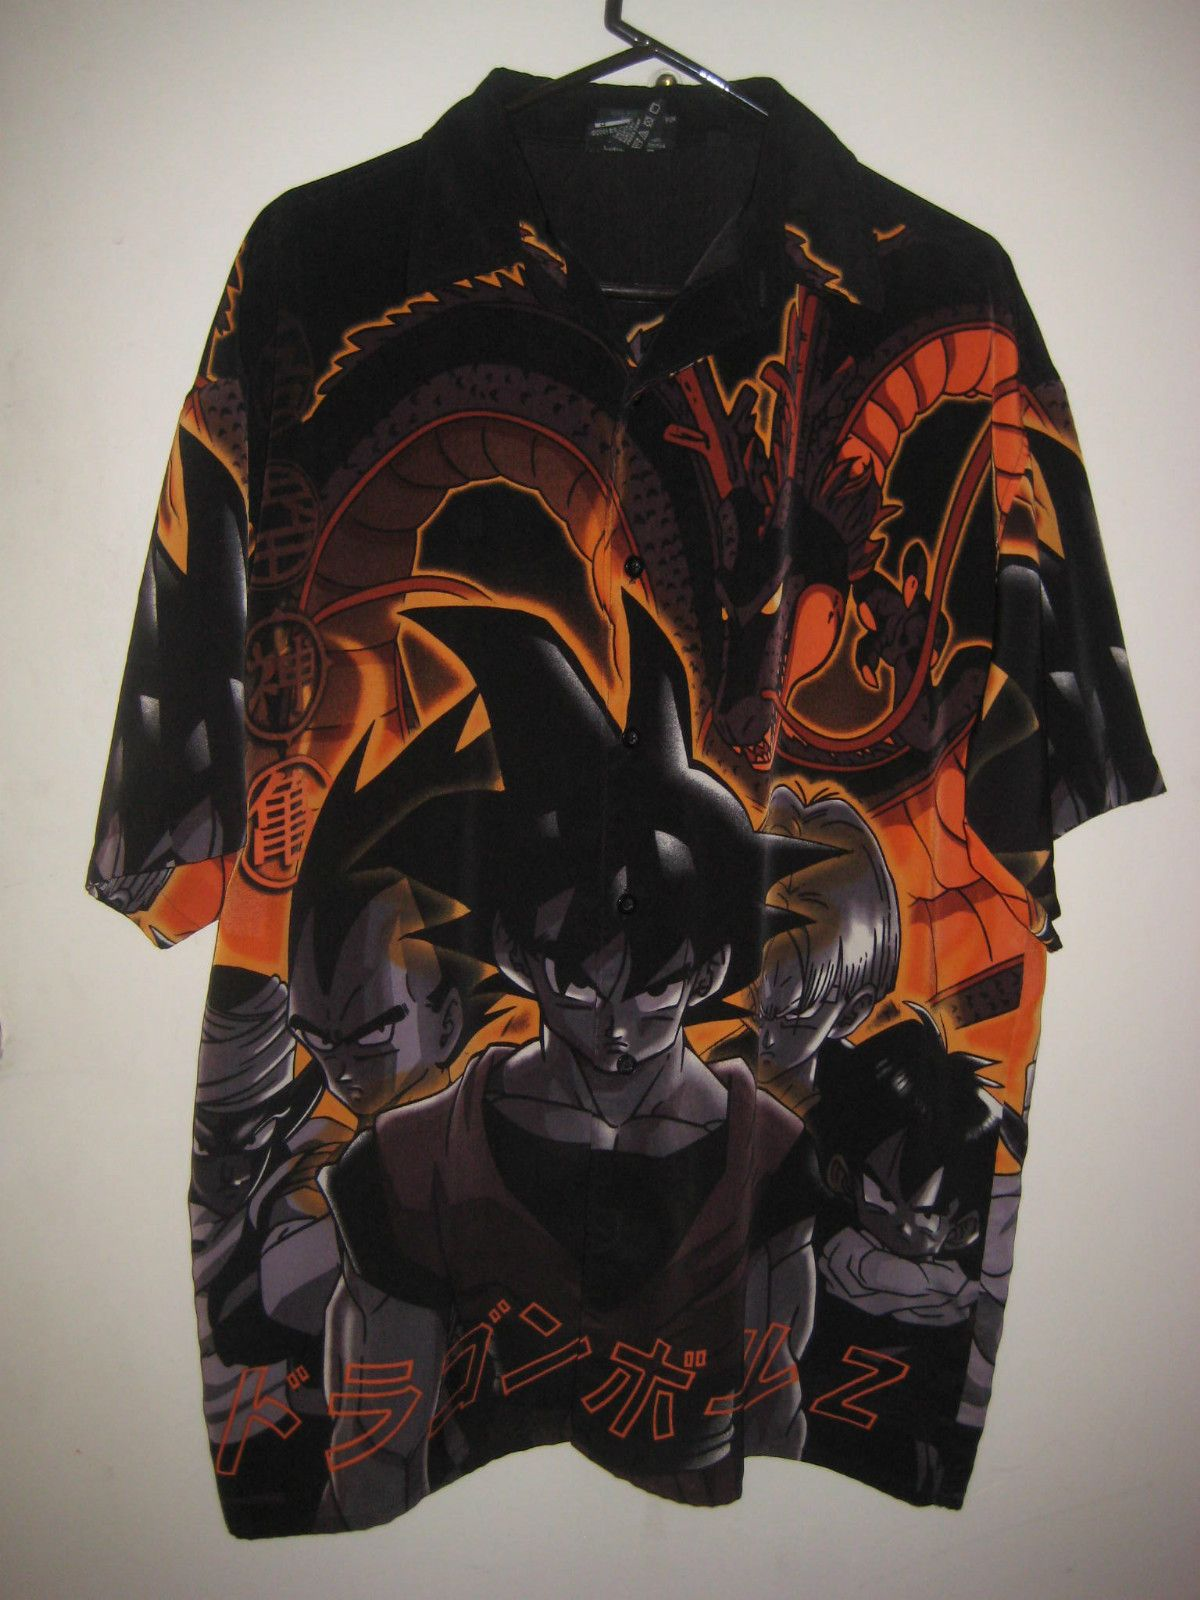 6ee81827 Mens Dragonball Z Goku Button Down Anime Camp Bowling Shirt Size ...